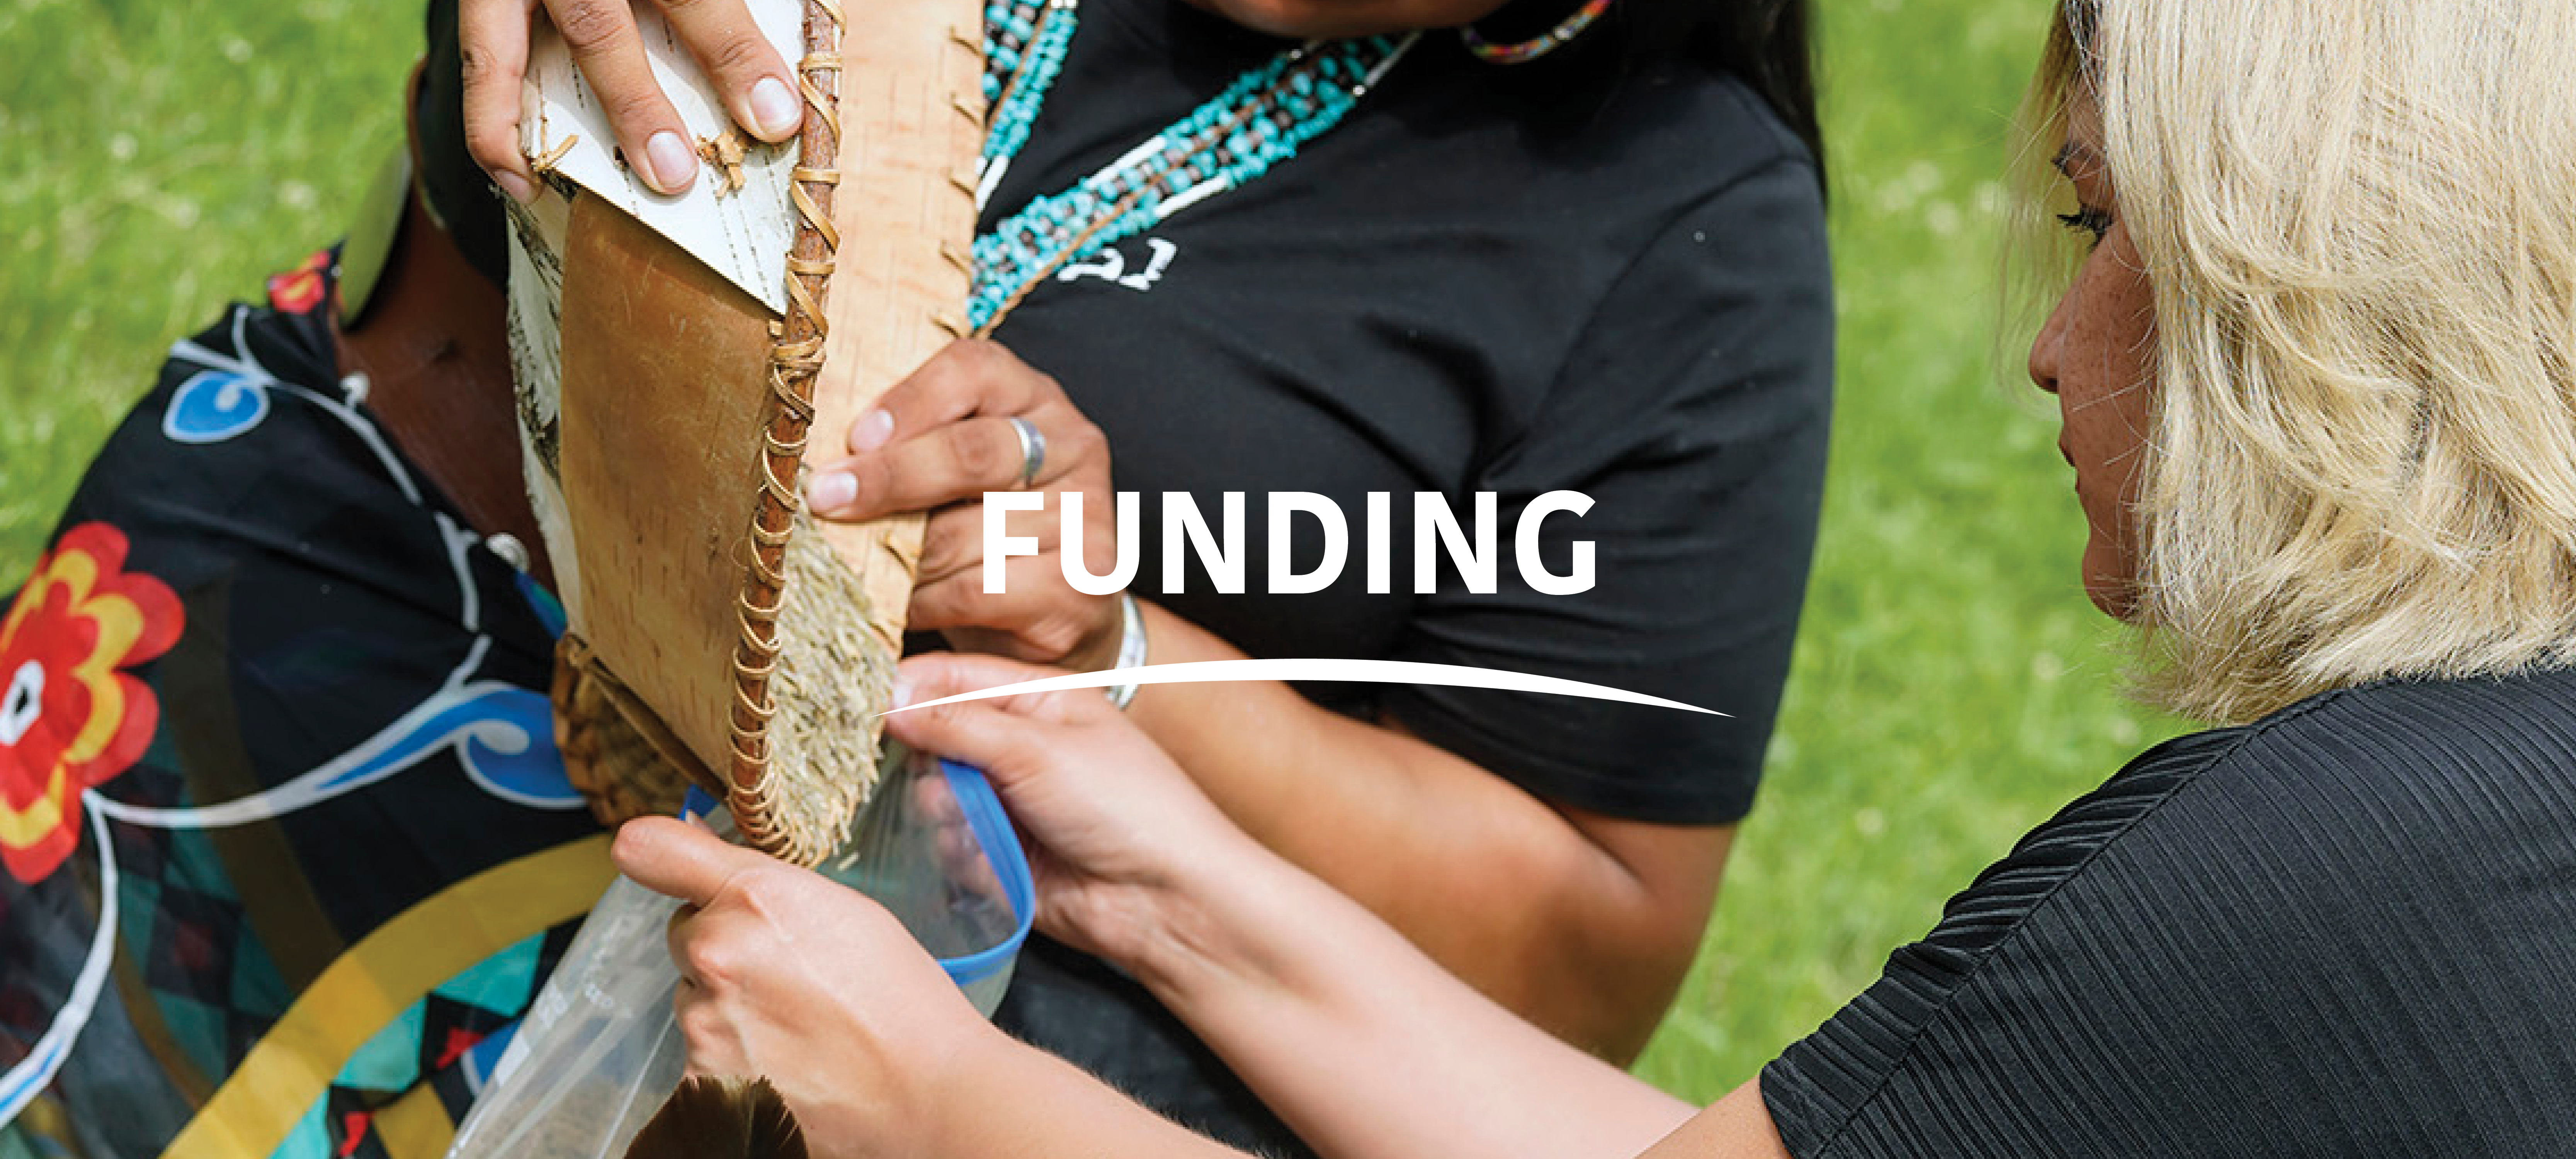 """Two Indigenous women standing with first woman on left pouring basket of wild rice into plastic bag held by second woman on right, with text in center """"Funding"""" with white curved line beneath text."""